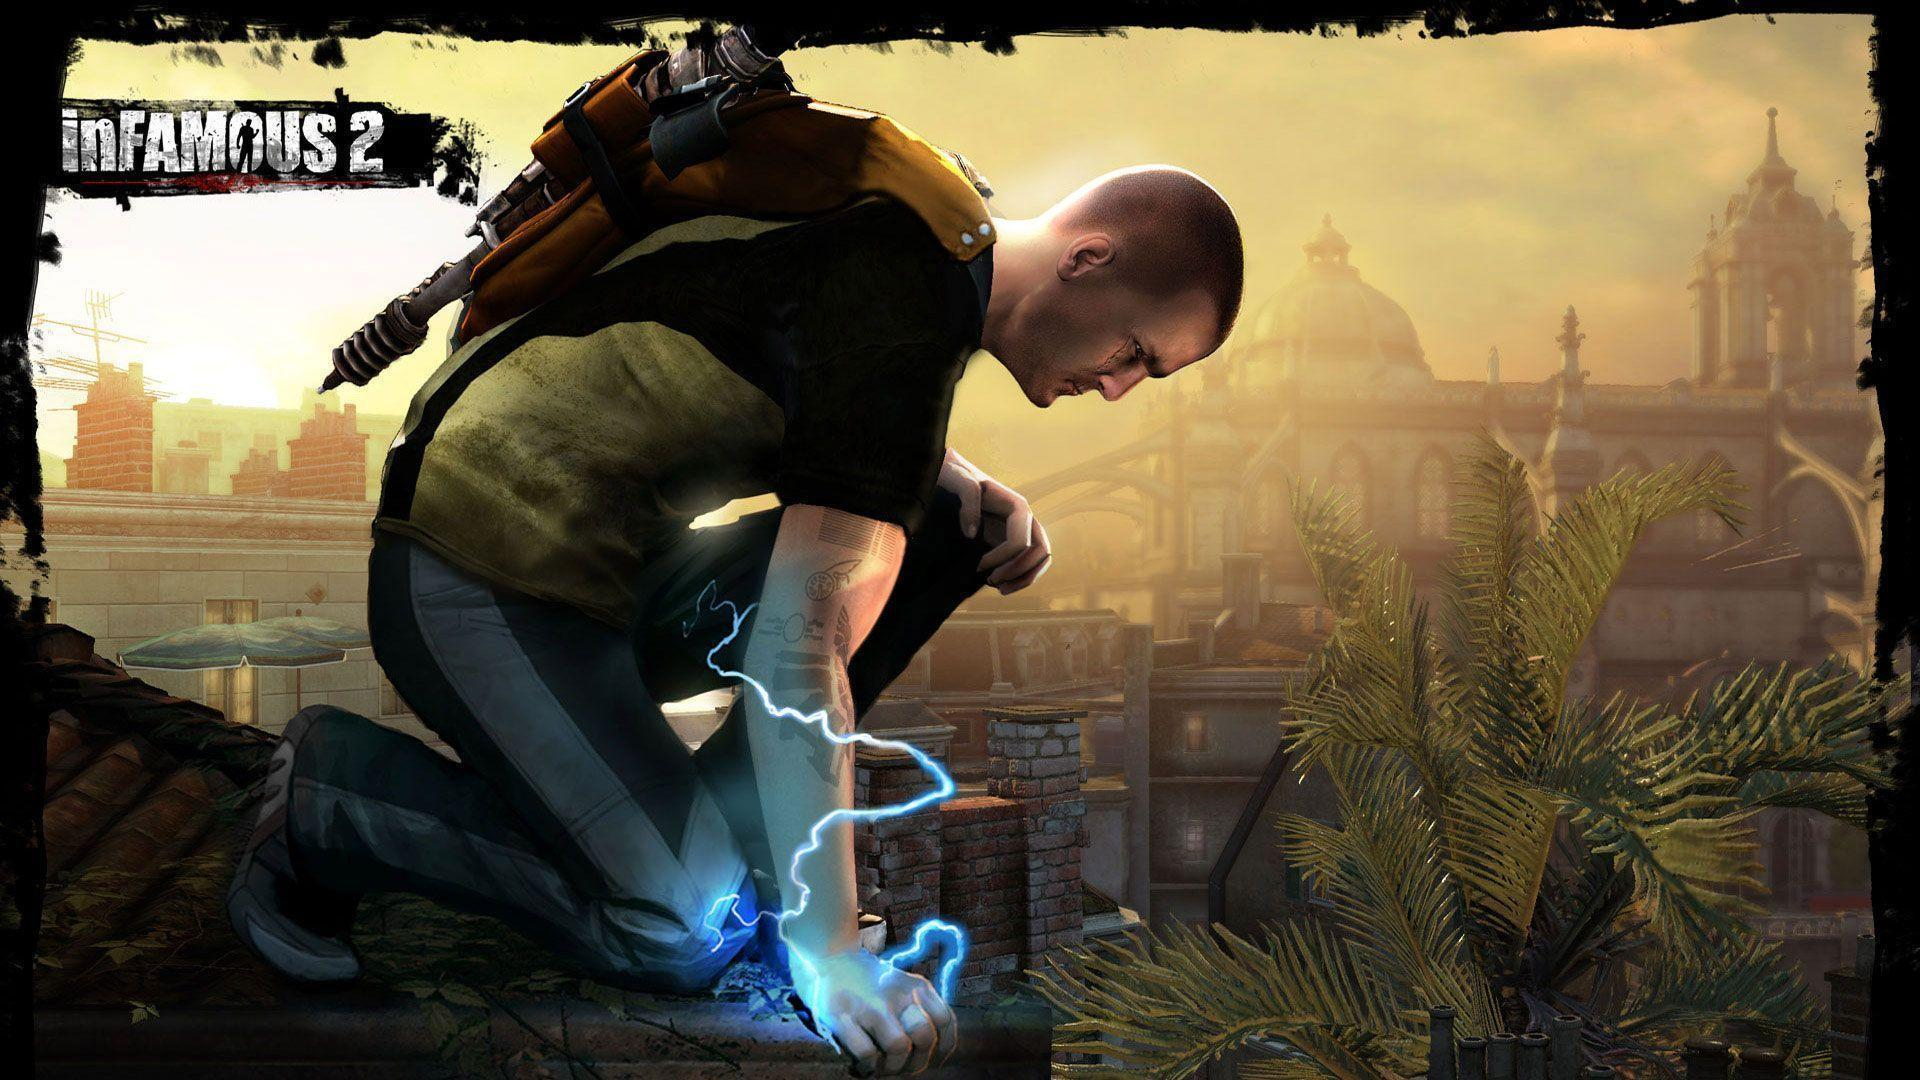 Infamous 2 Wallpapers Hd wallpapers